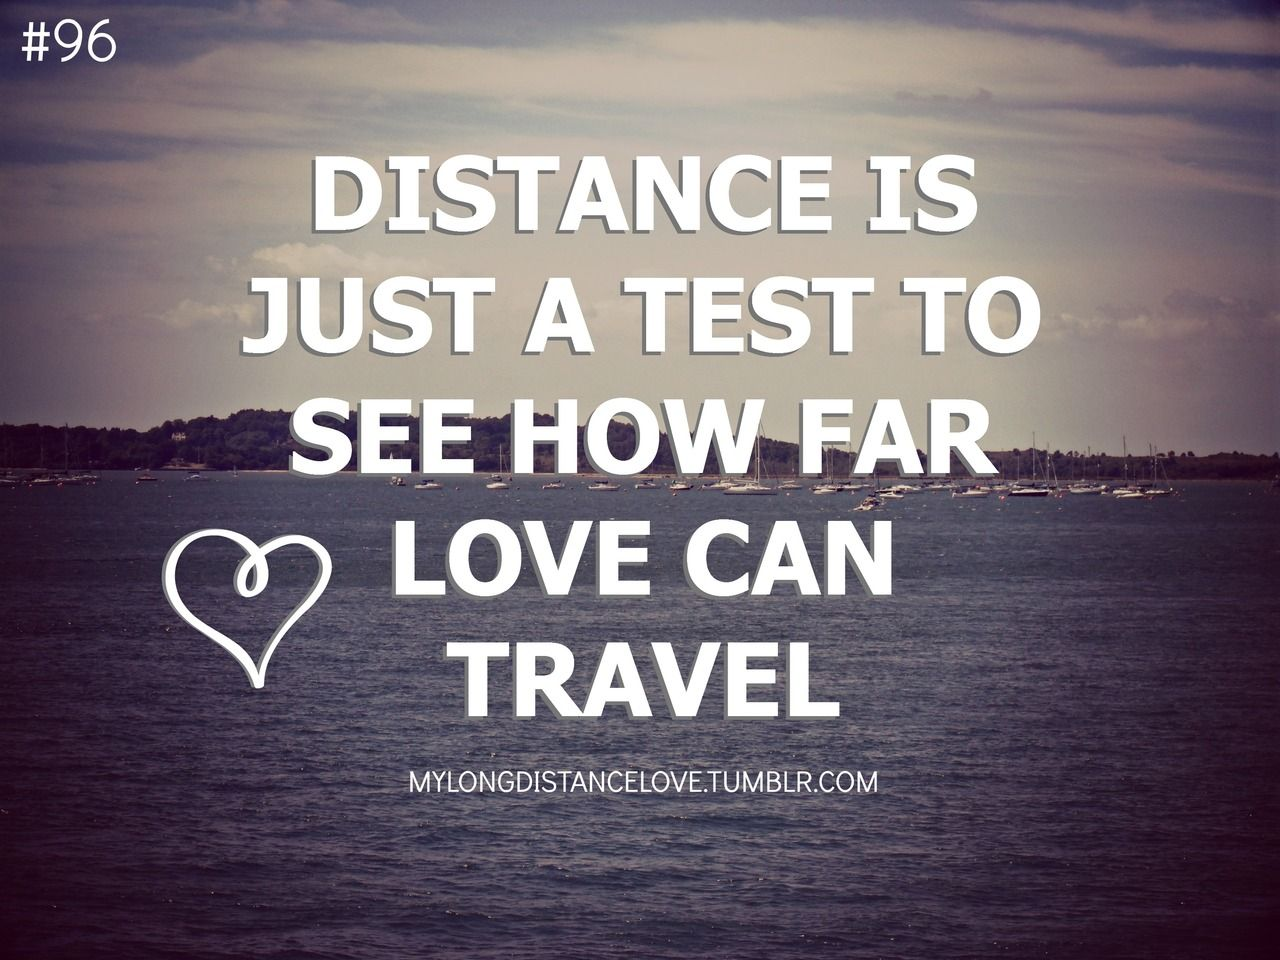 Cute Long distance relationship quotes for him and her with romantic images Distance friendship or love affairs quotes sayings & messages to romance & to